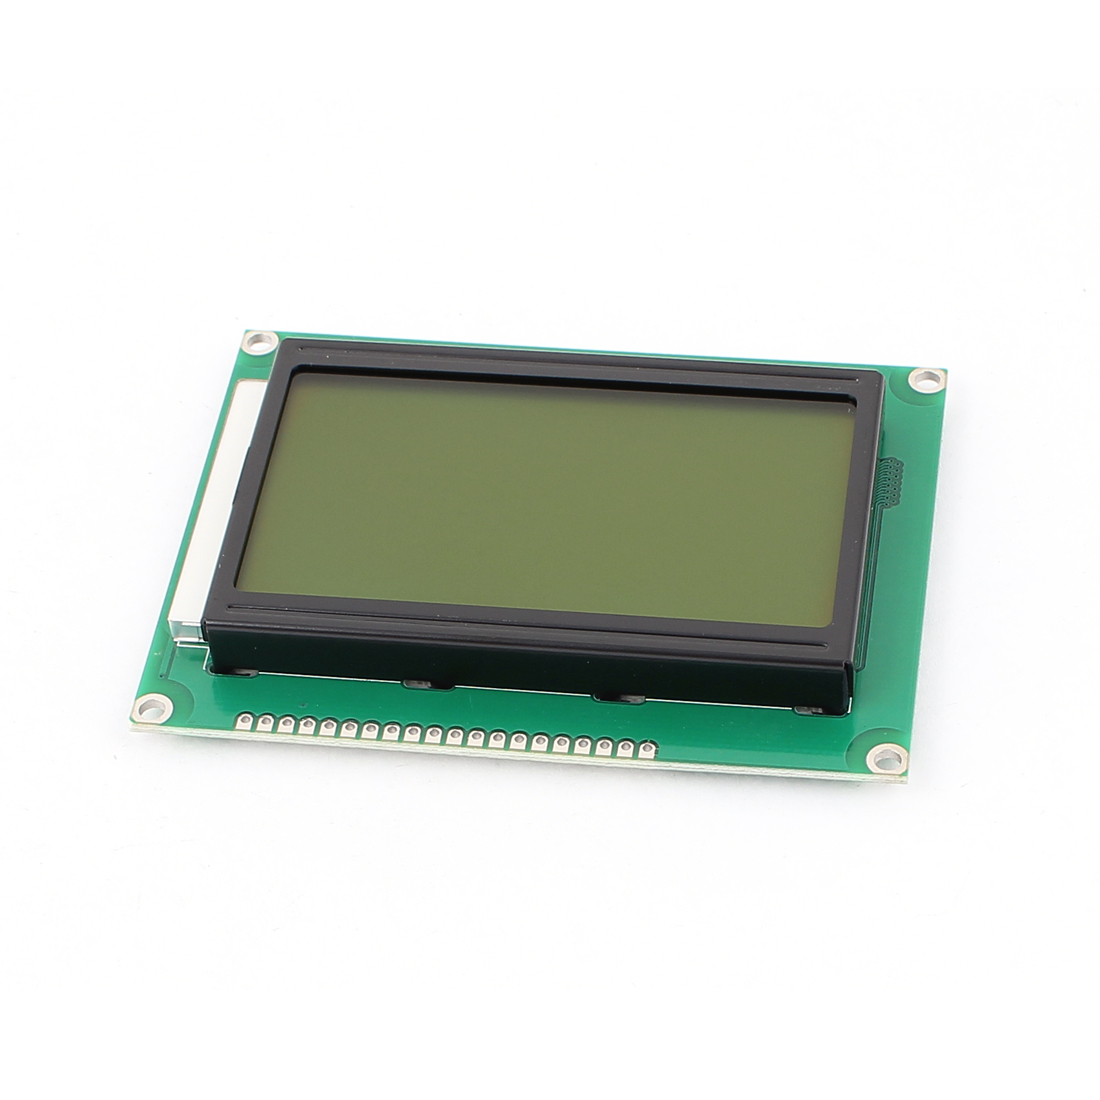 "LCD12864 Display Dot matrix 3.2"" TFT LCD Screen DC 5V Module for MCU"